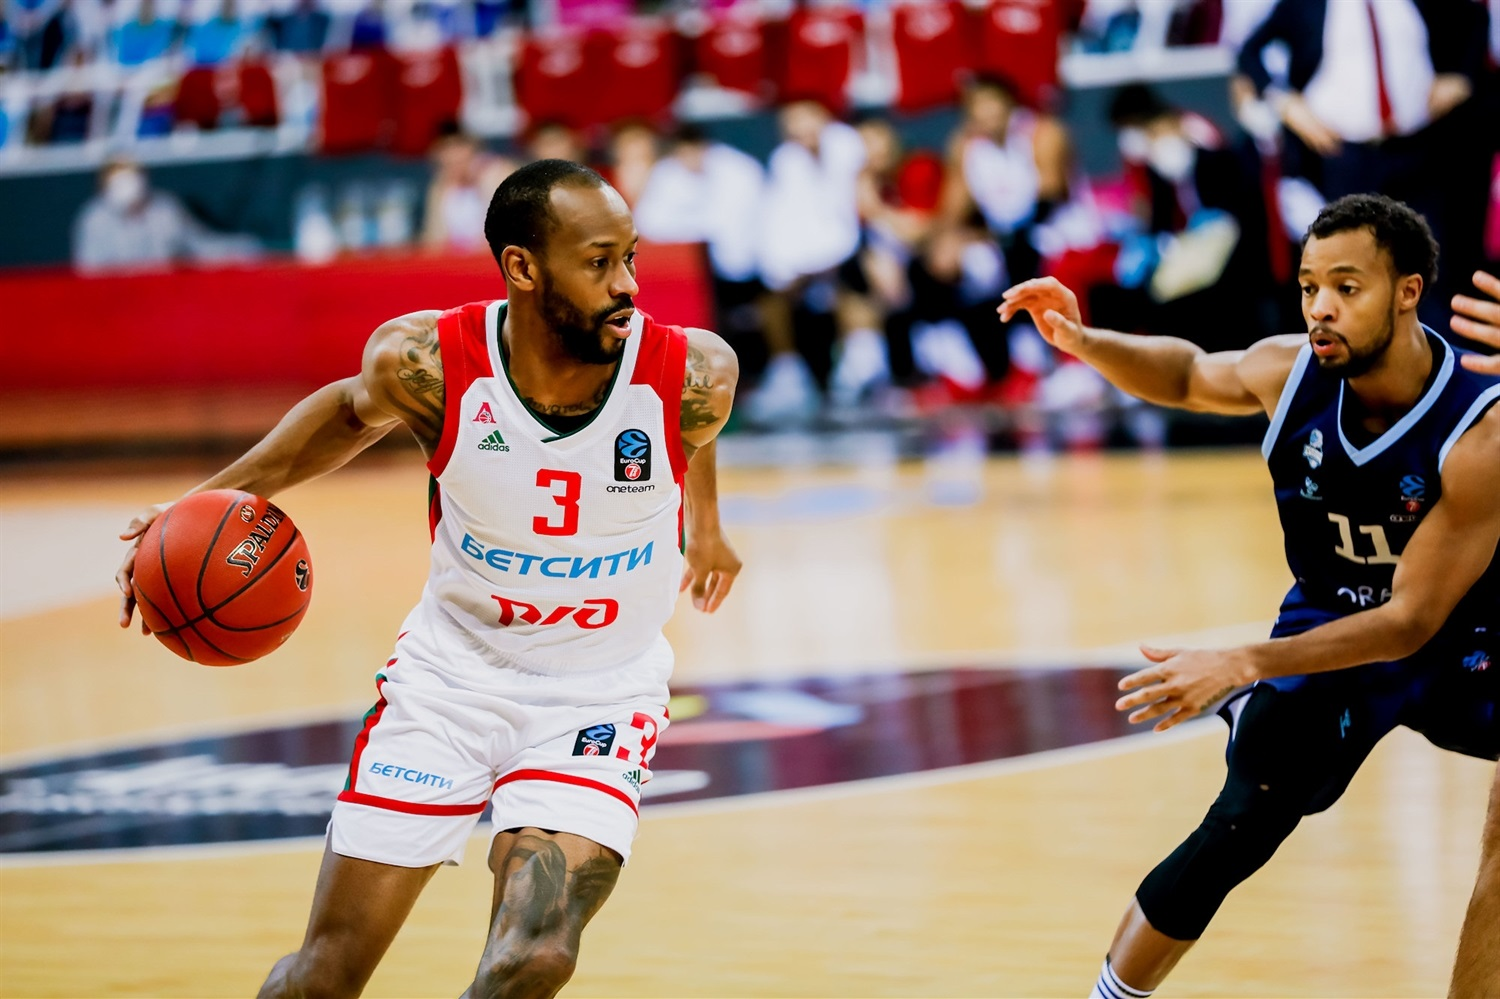 Will Cummings - Lokomotiv Kuban Krasnodar (photo Andorra - Martin Imatge) EC20